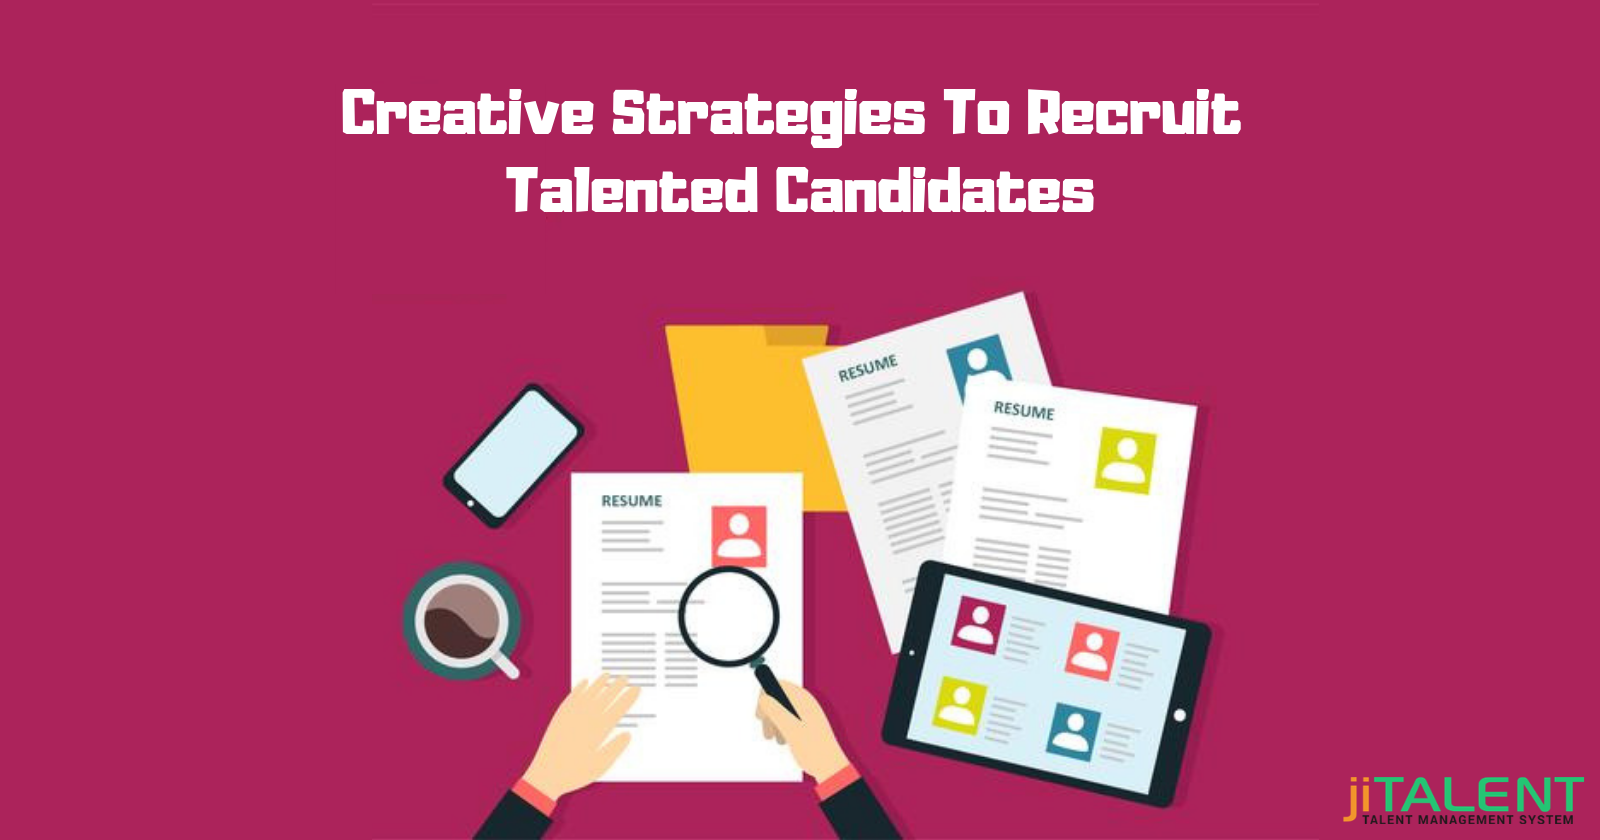 Find the Talented Candidate With Creative Recruiting Strategies